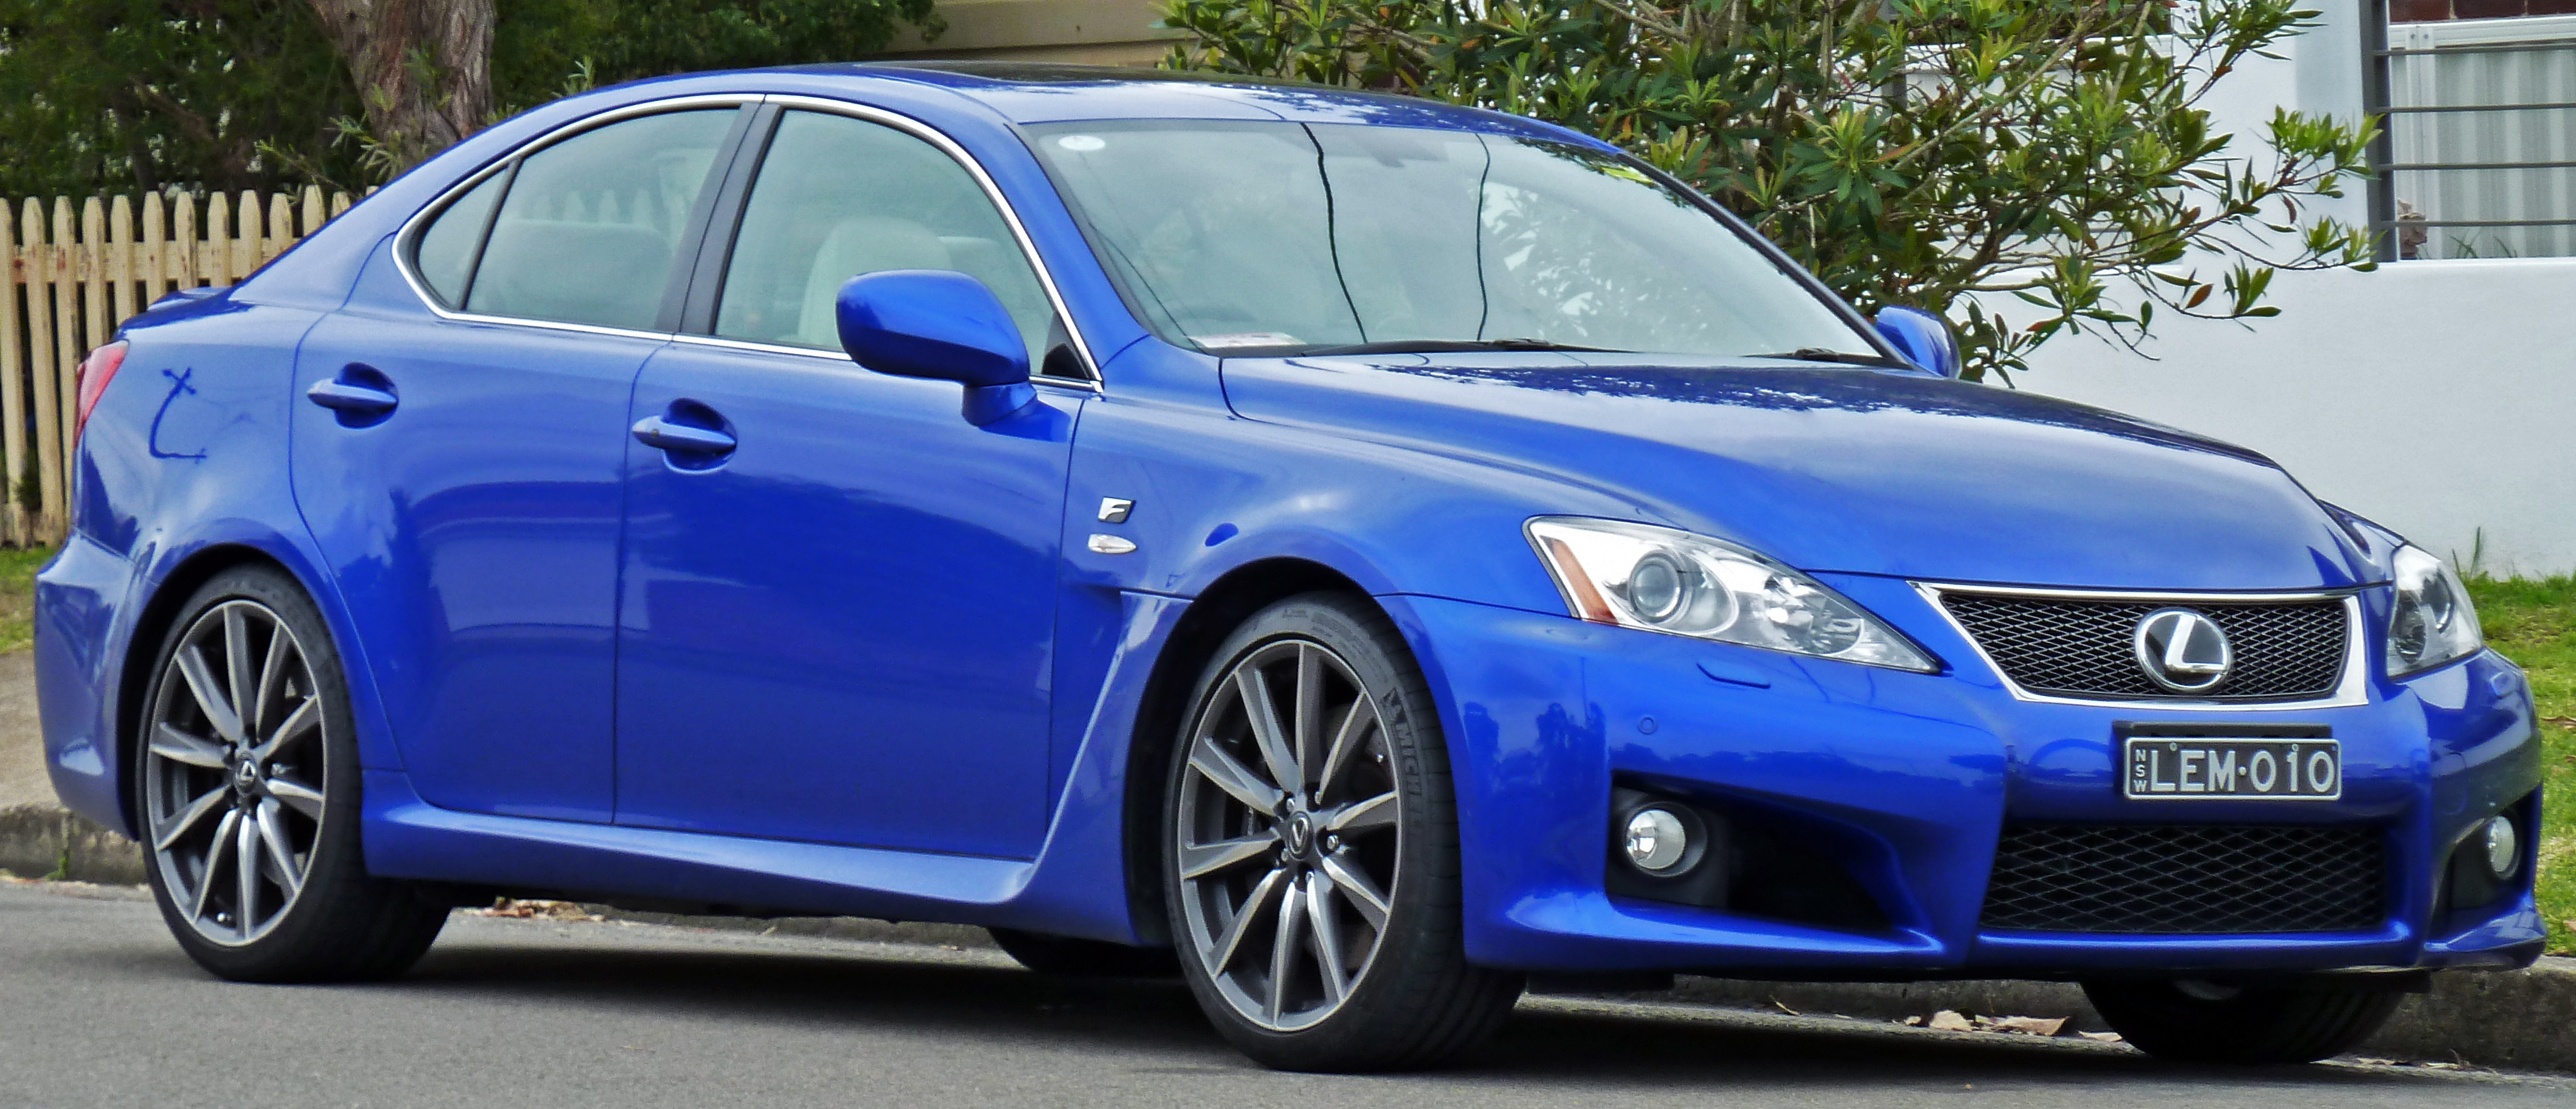 2008 Lexus Is F #10